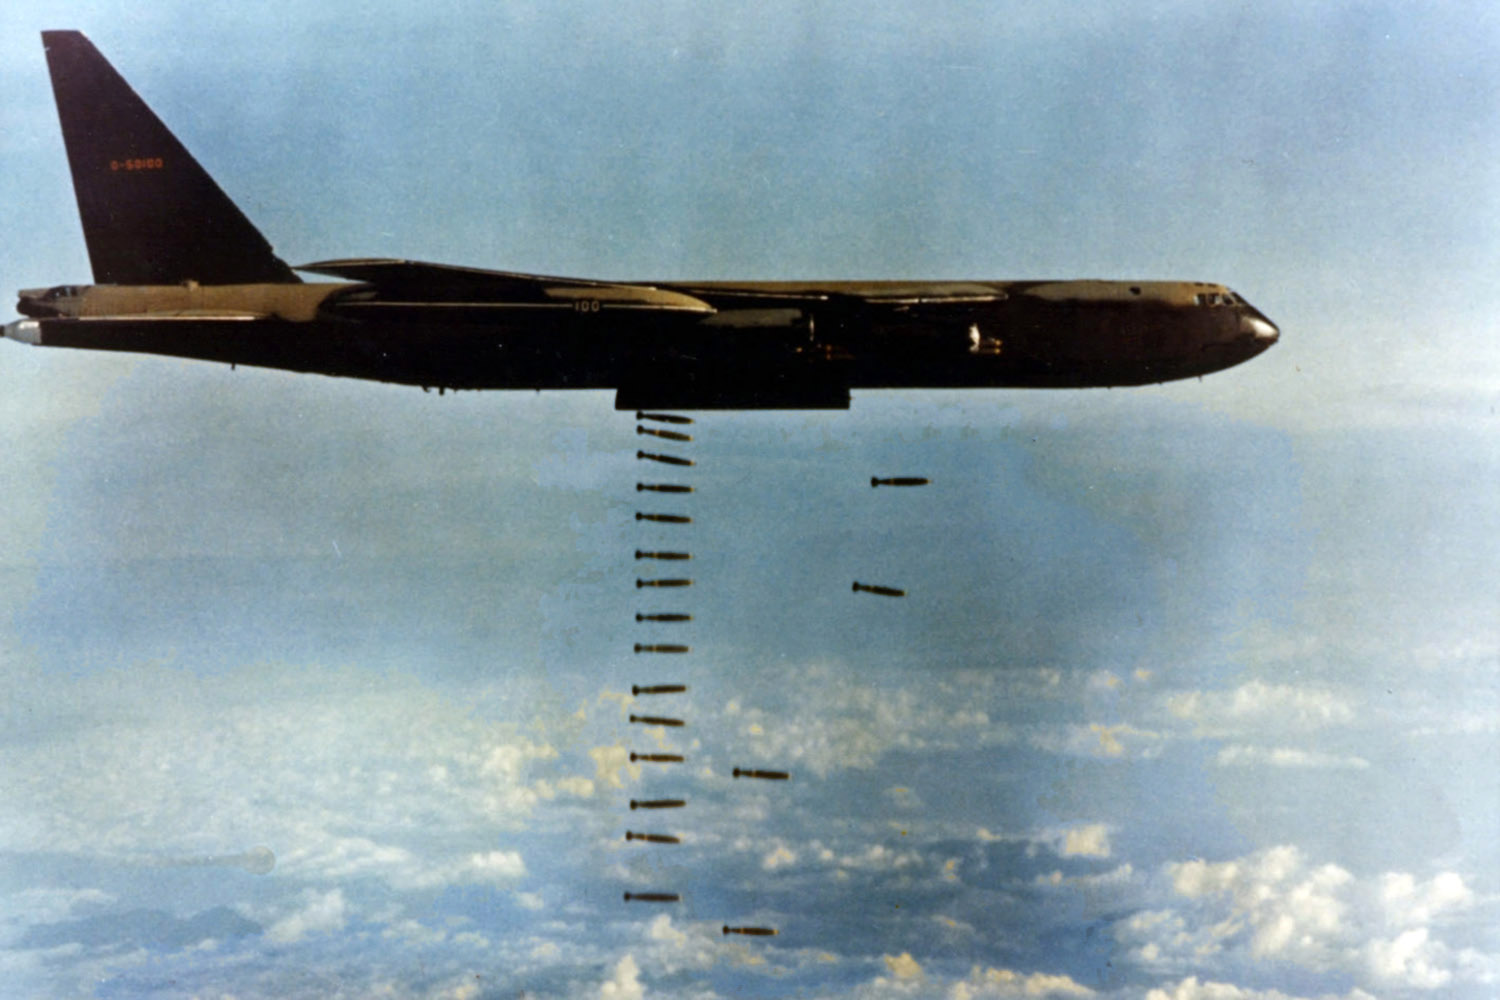 Bomber dropping bombs in Operation Linebacker during the Vietnam War image  - Free stock photo - Public Domain photo - CC0 Images